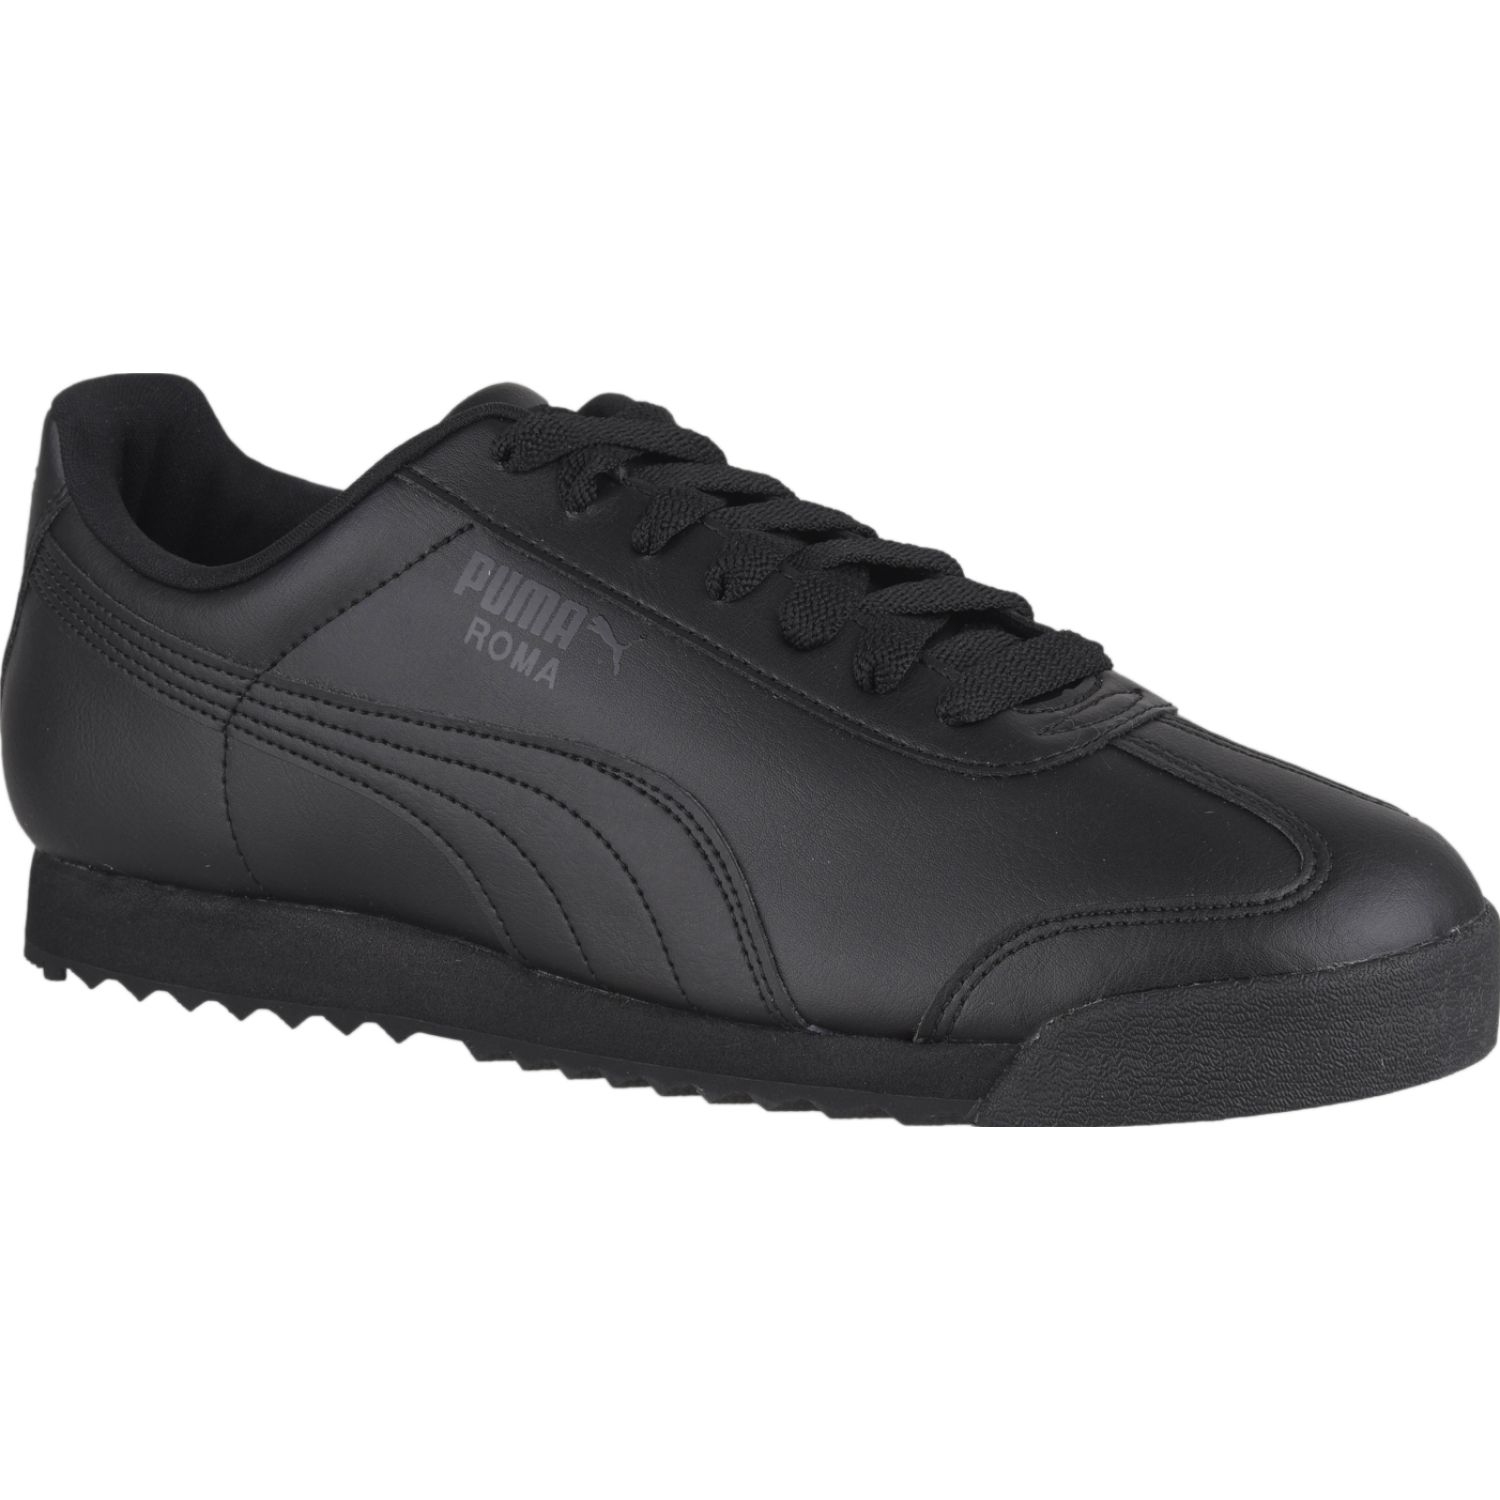 Puma roma basic Negro / negro Walking